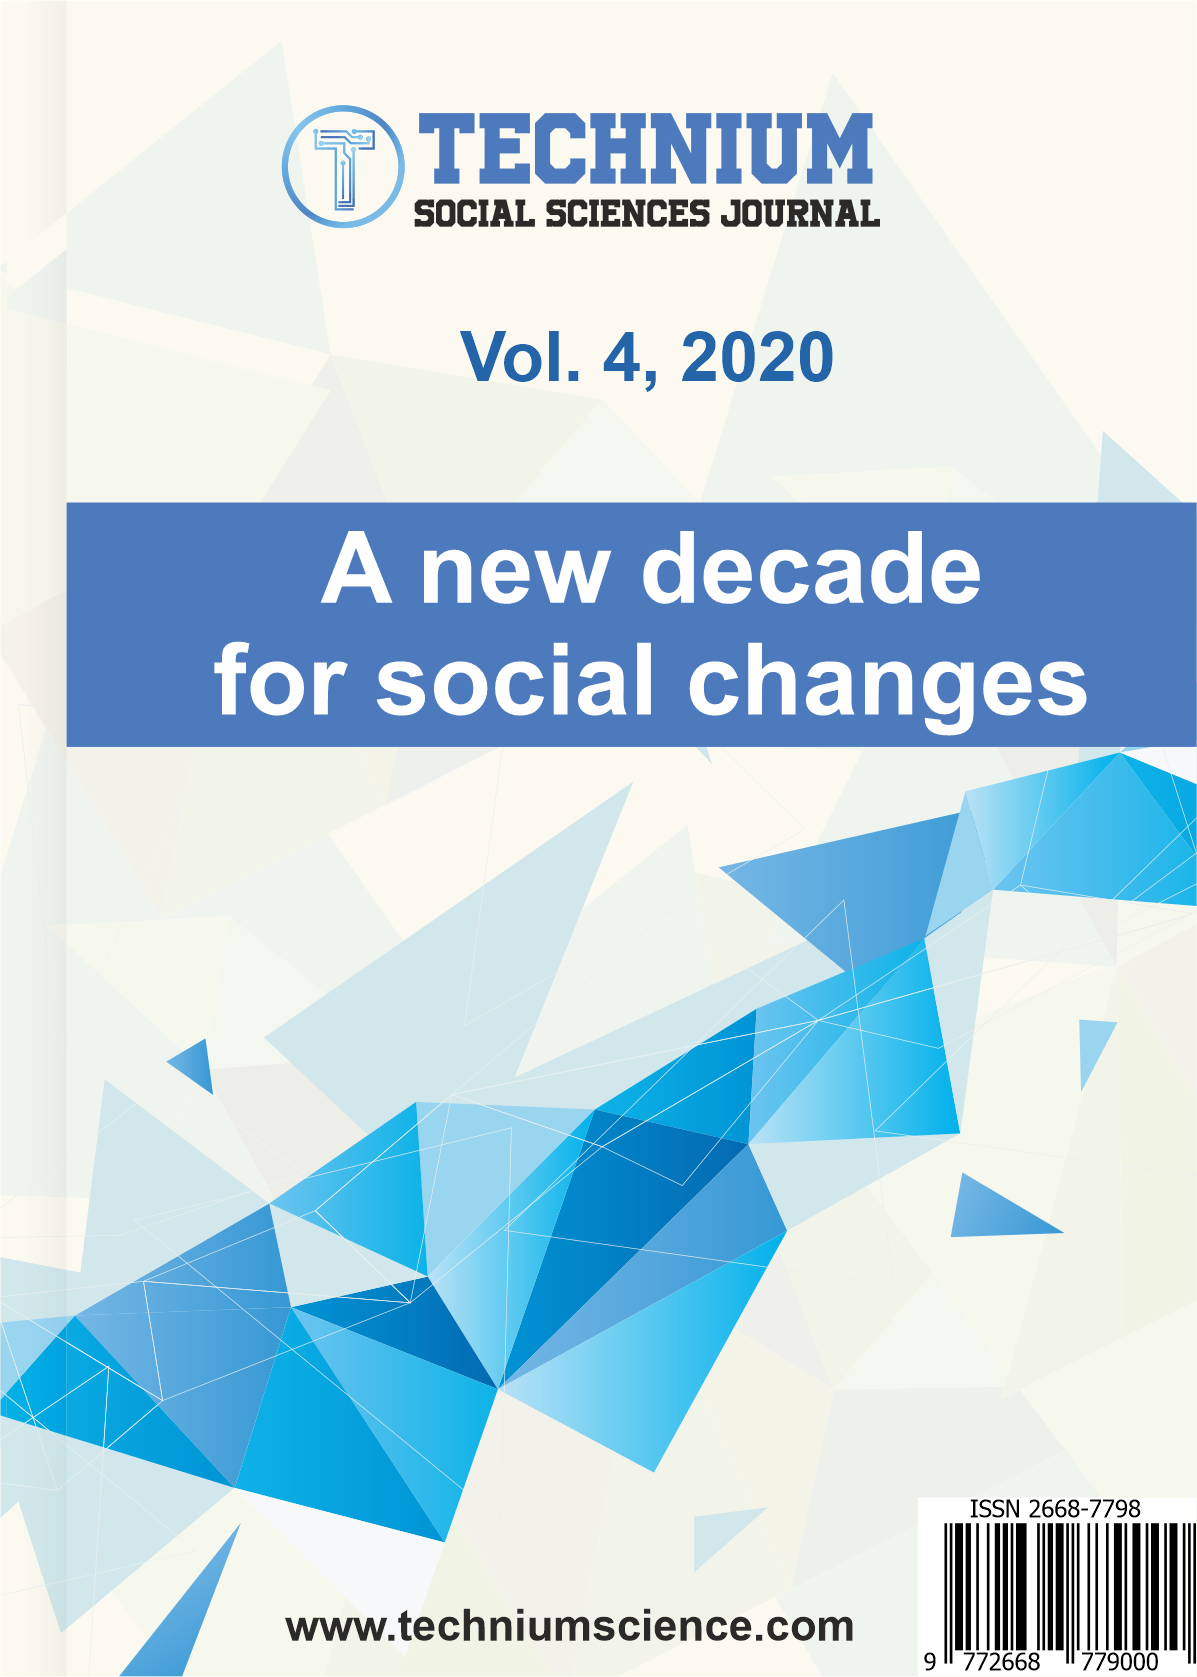 View Vol. 4 (2020): A new decade for social changes